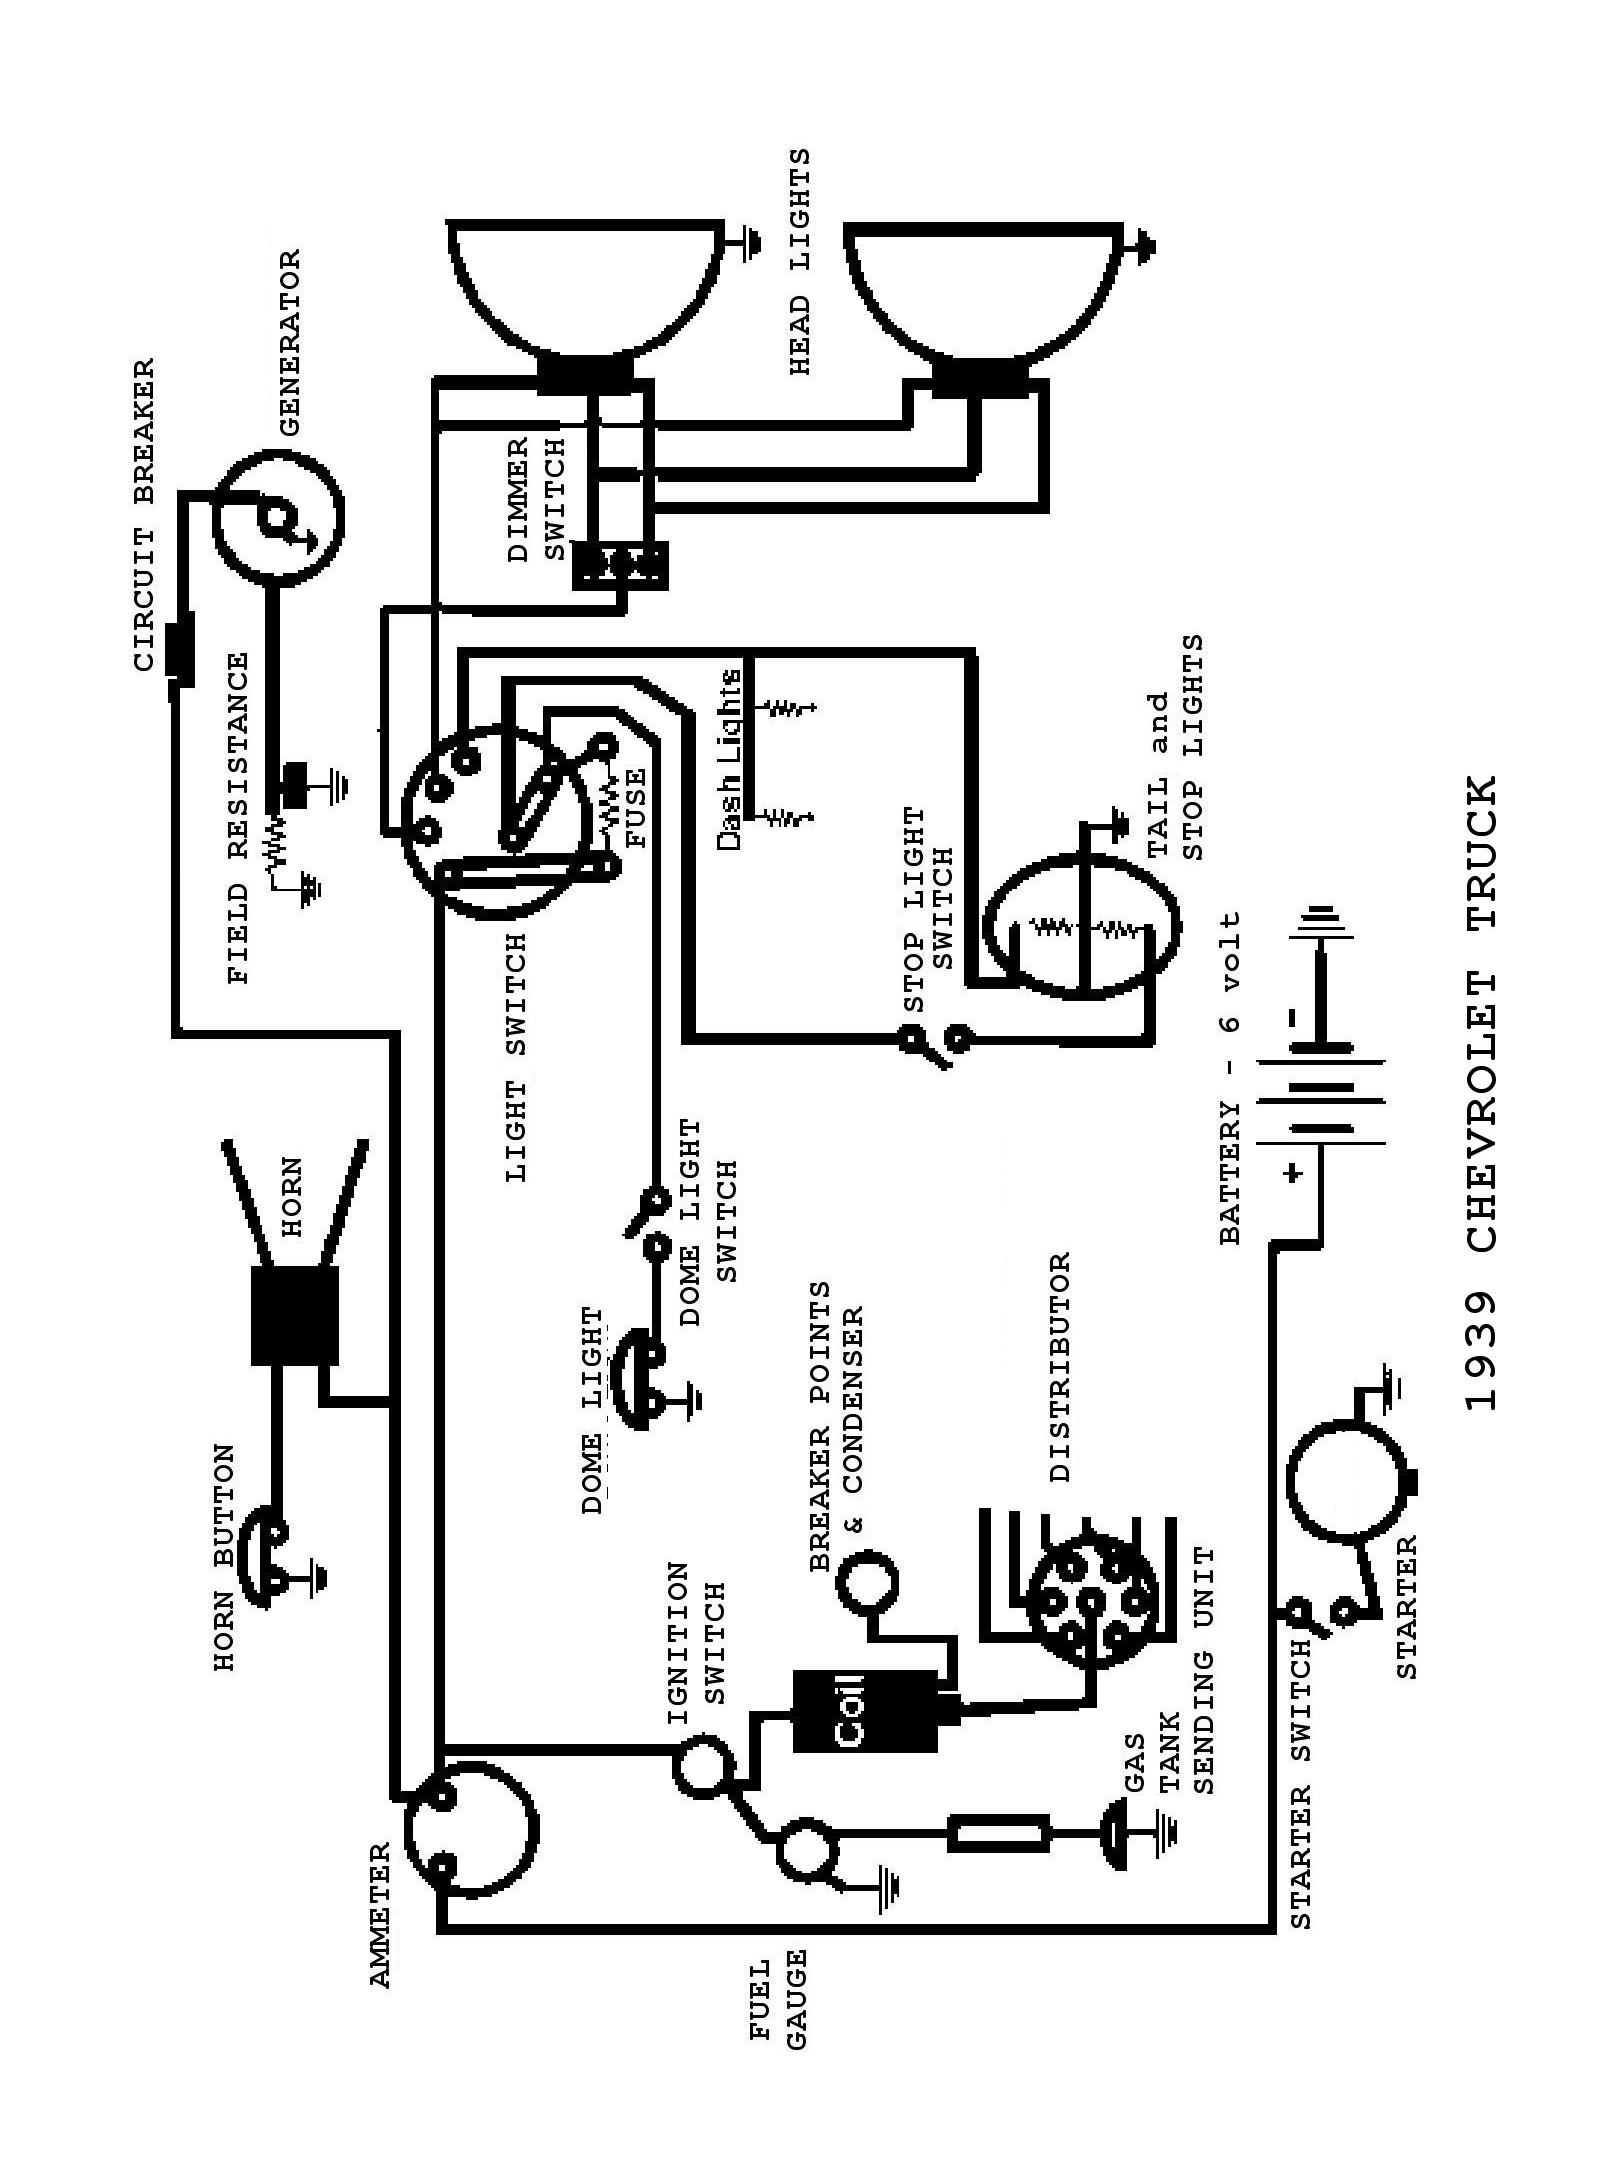 39truck ihc truck wiring diagrams mazda truck wiring diagrams \u2022 free  at metegol.co